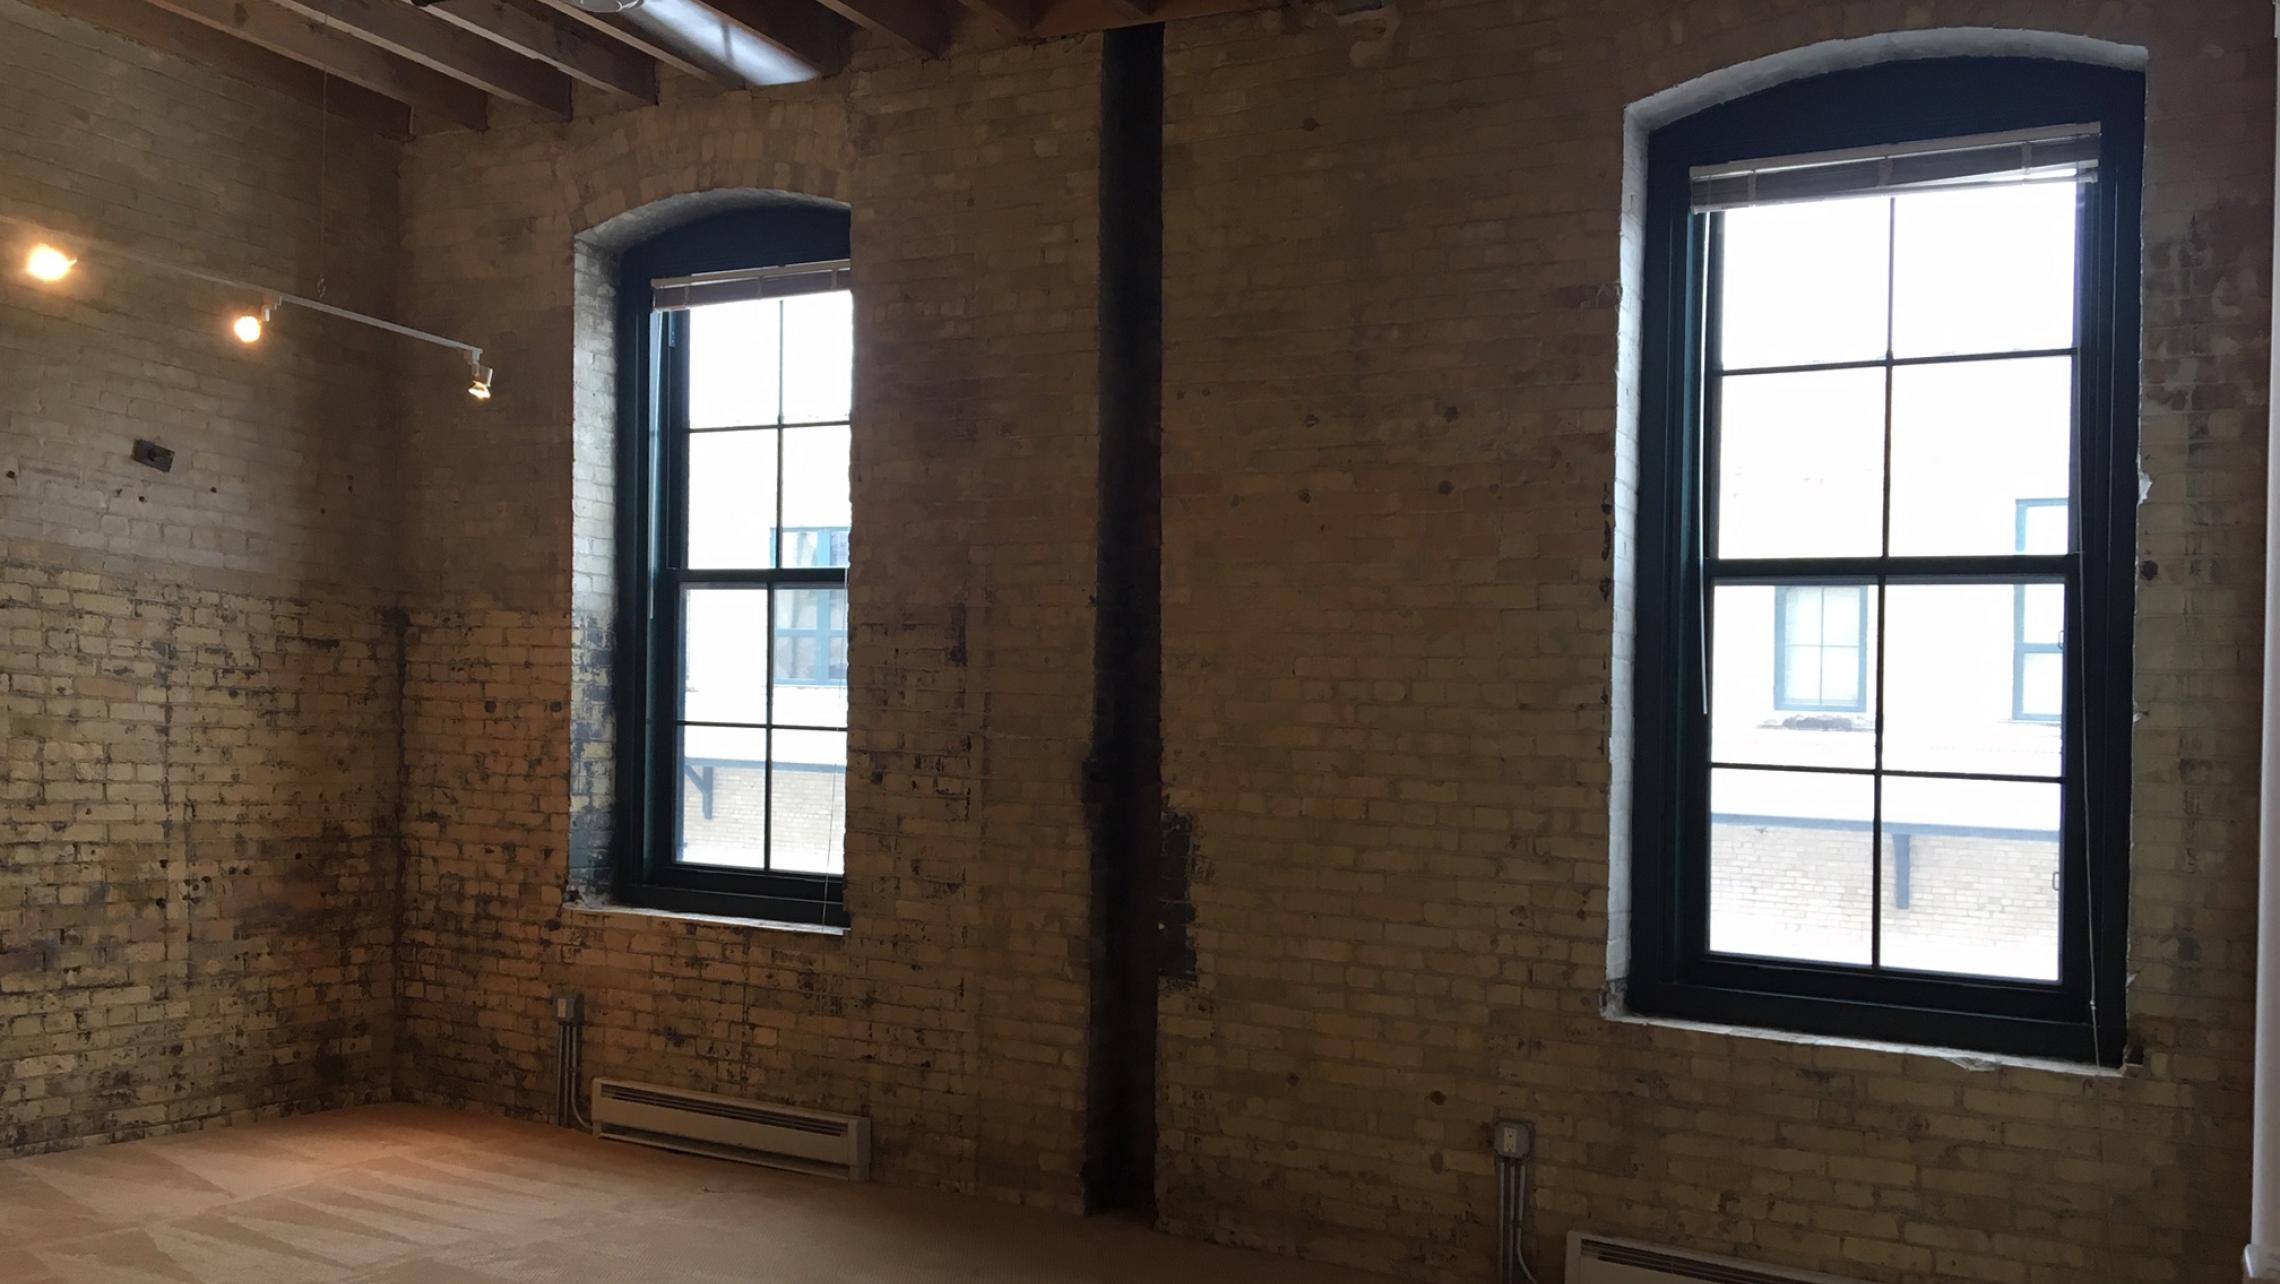 Tobacco-Lofts-At-The-Yards-Apartment-E208-One-Bedroom-Historic-Exposed-Brick-Timber-Unique-Downtown-Madison-Bike-Path-Fitness-Lounge-Courtyard